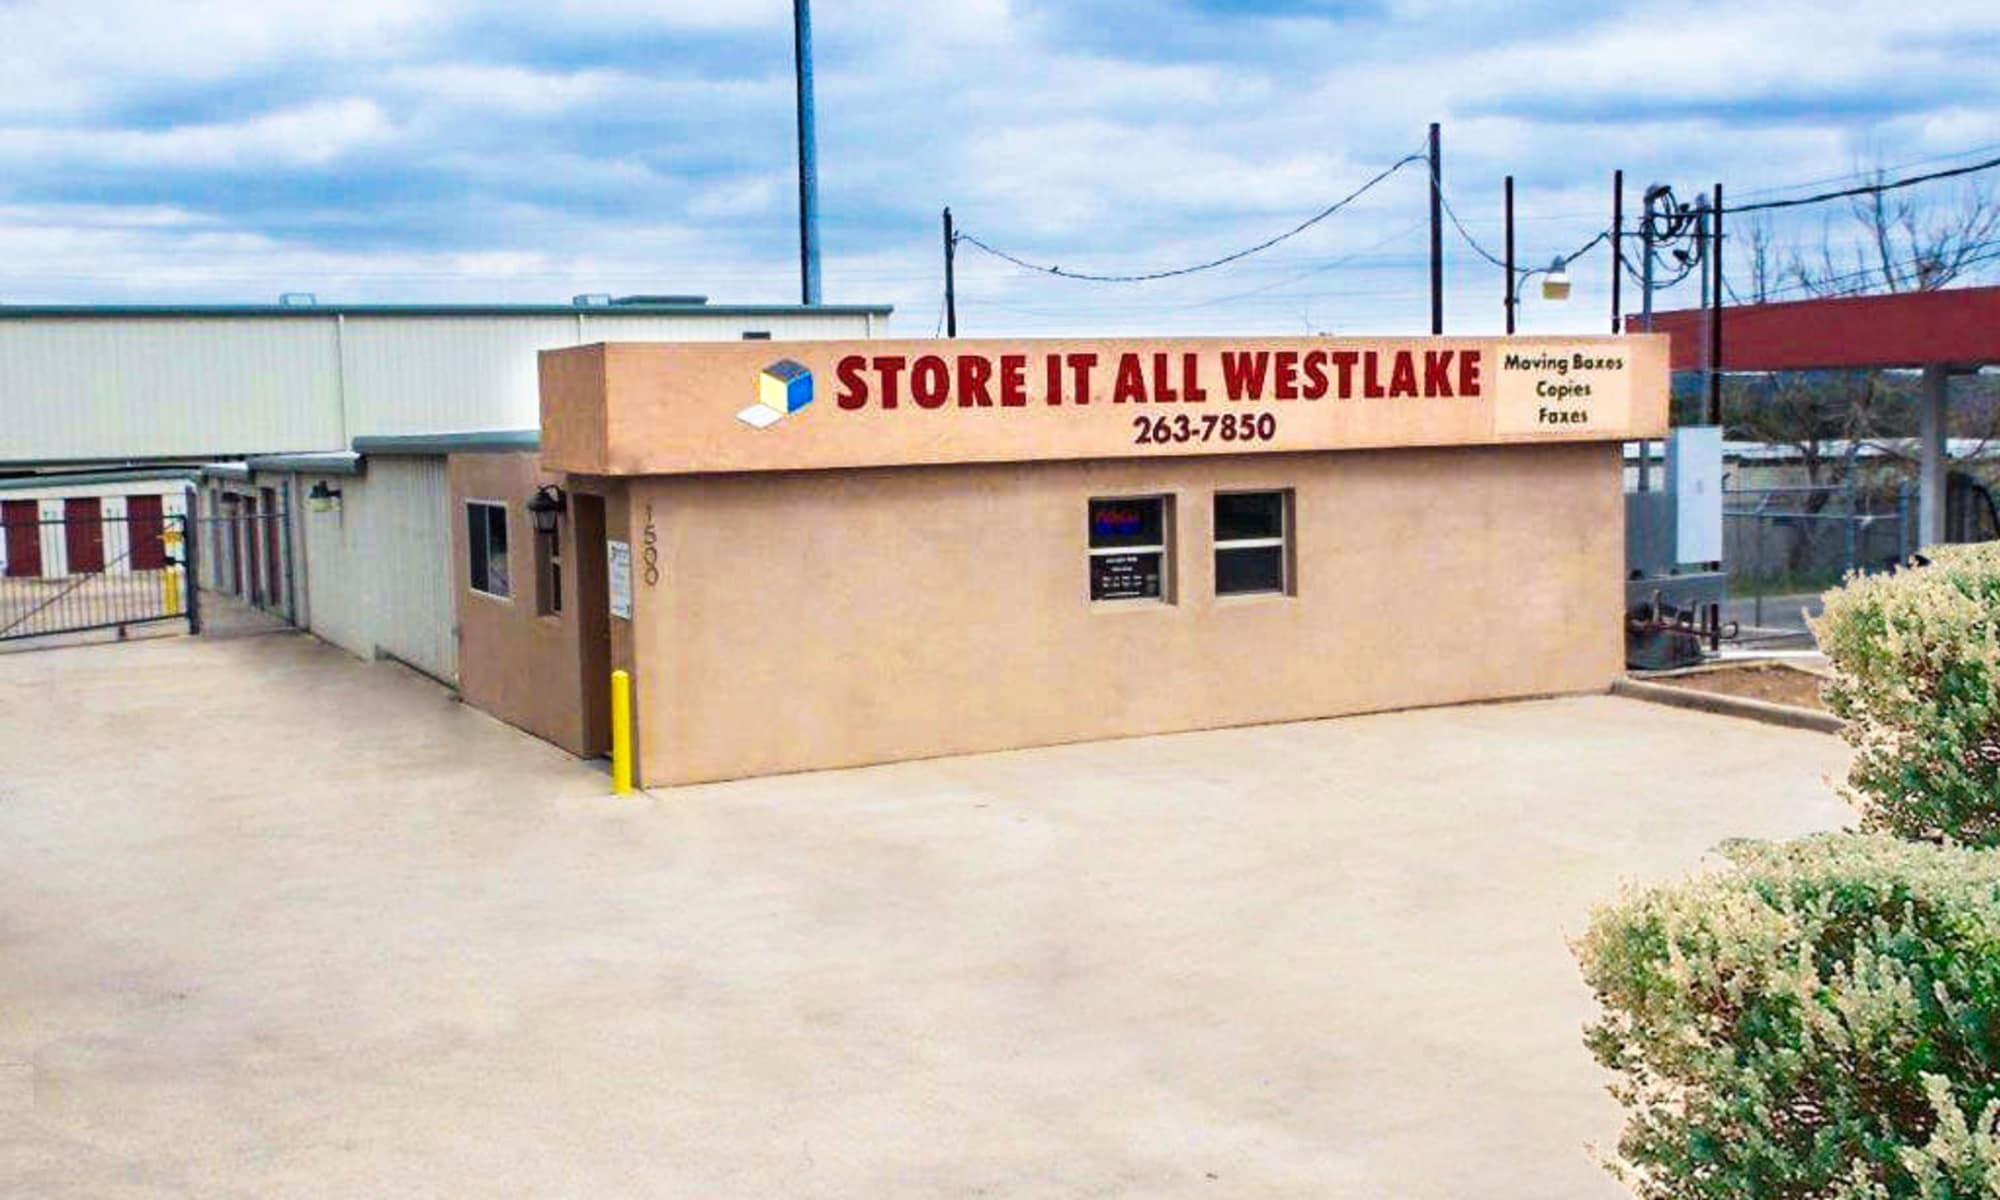 Self storage in Austin TX